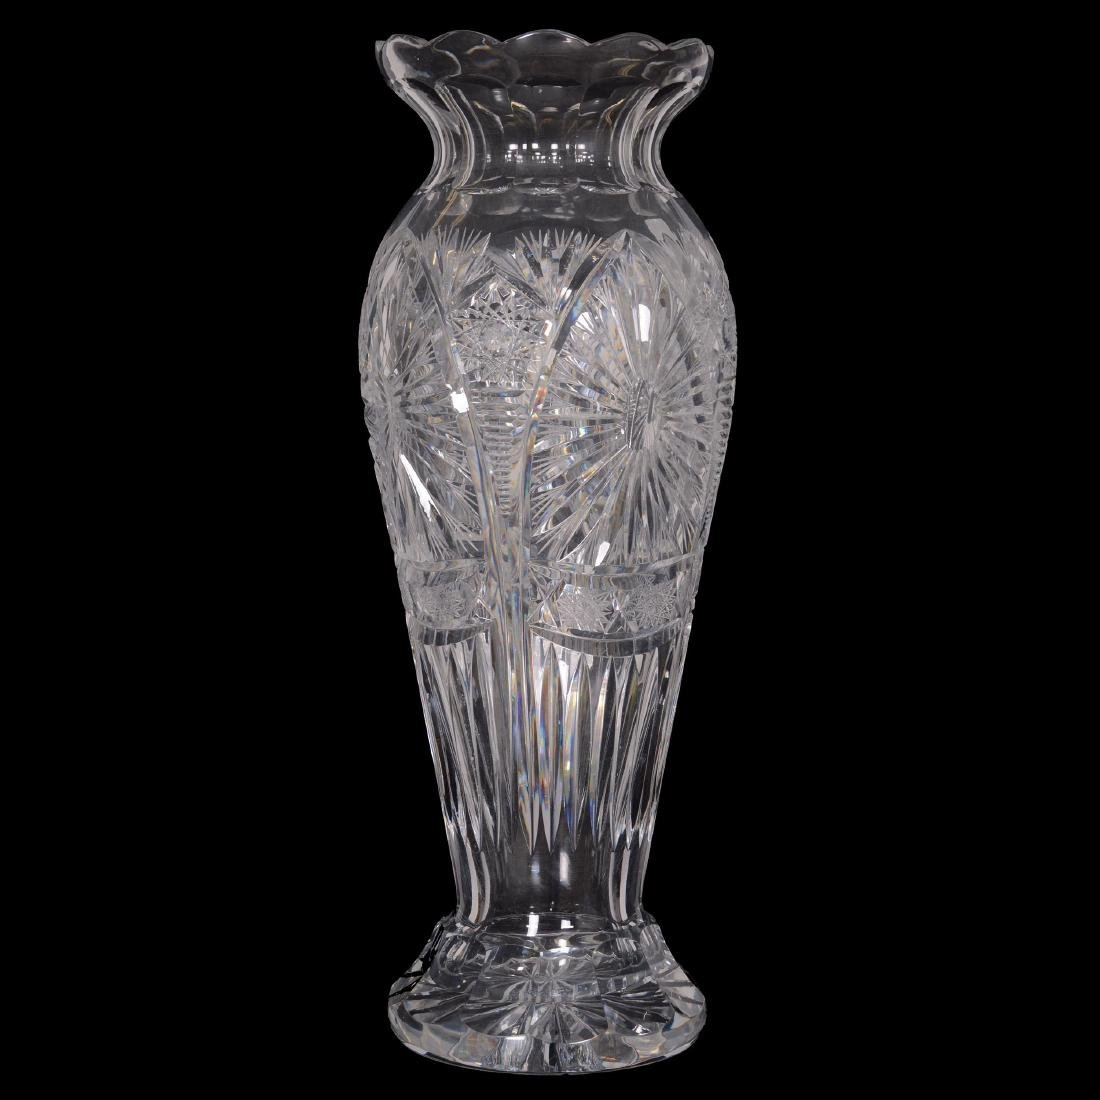 Heavy Cut Glass Vase - Unknown Age